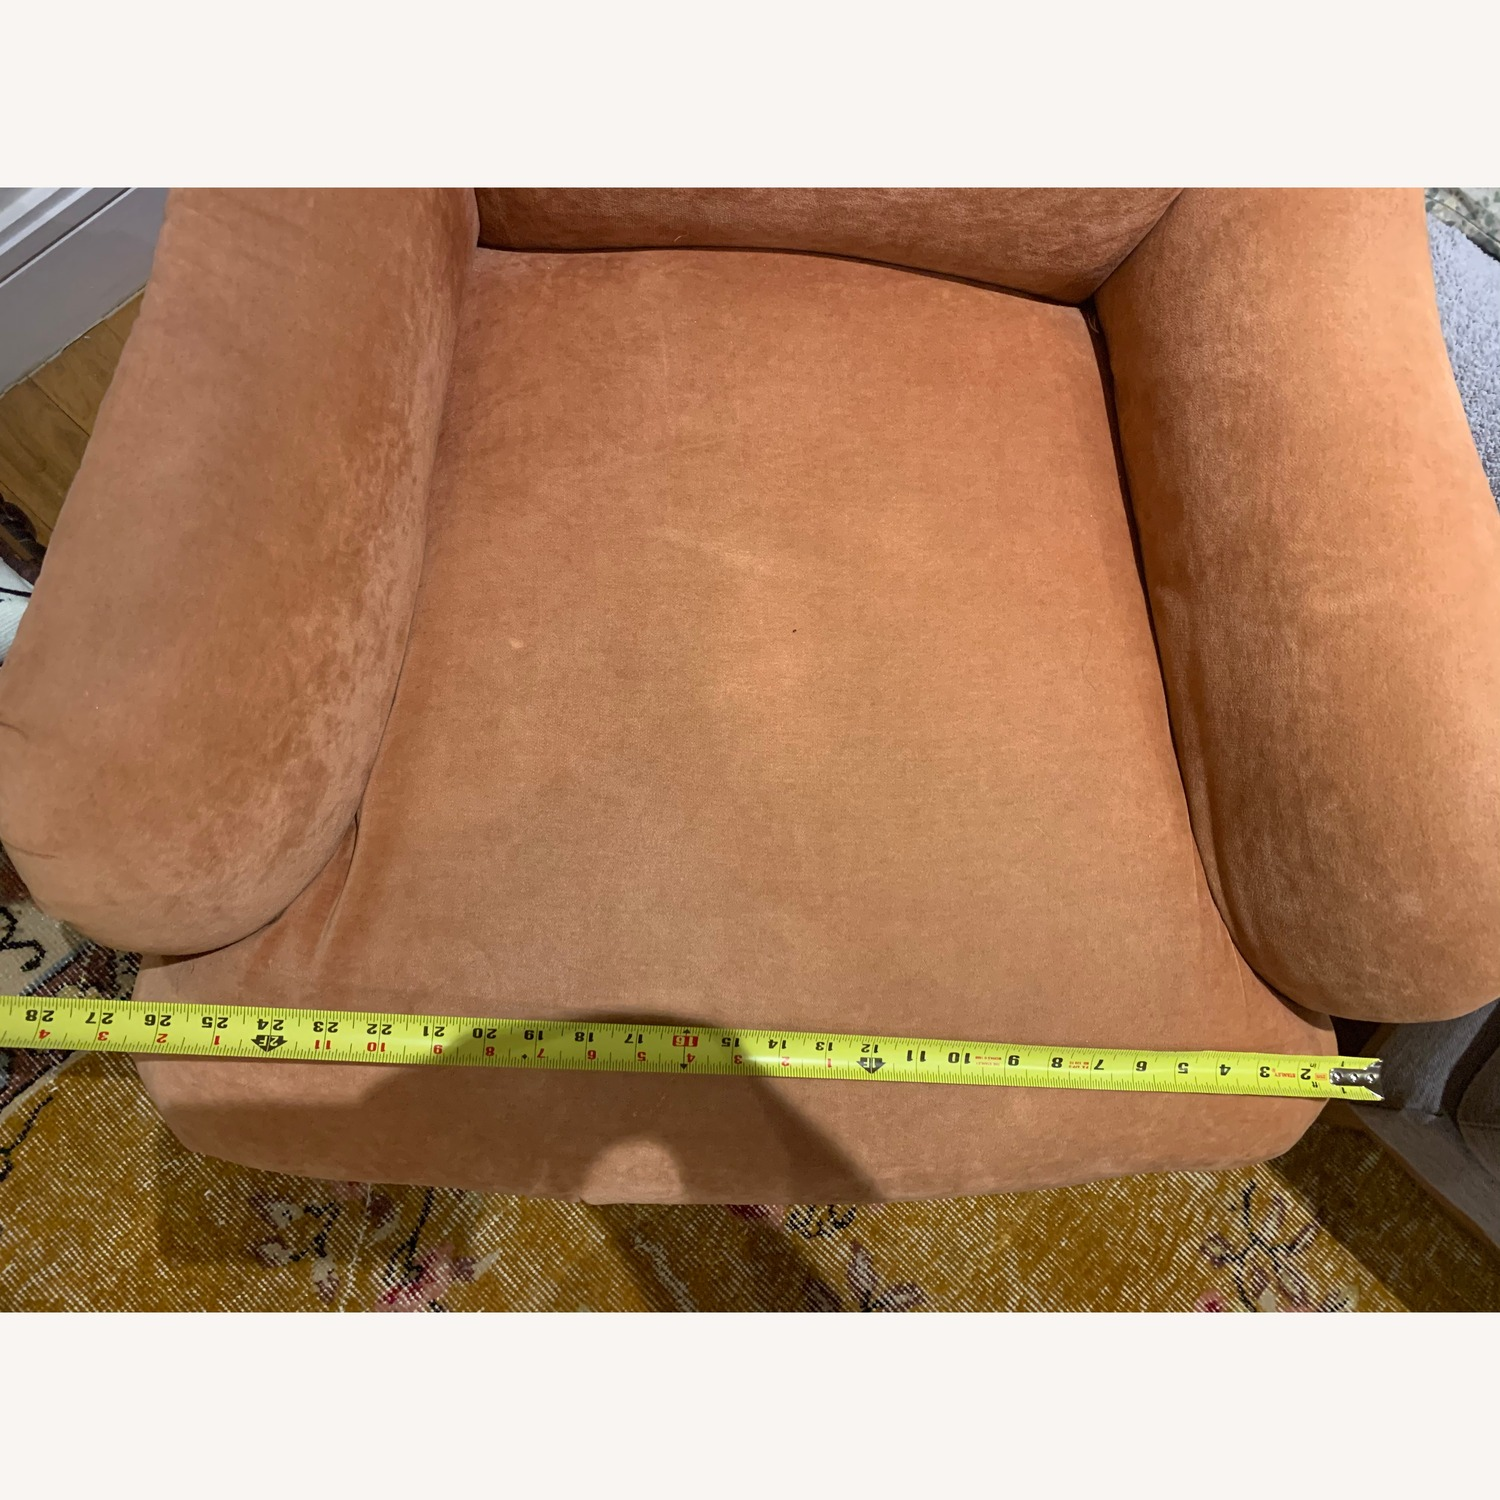 Kathy Pink Arm Chair w/ Castors - image-8